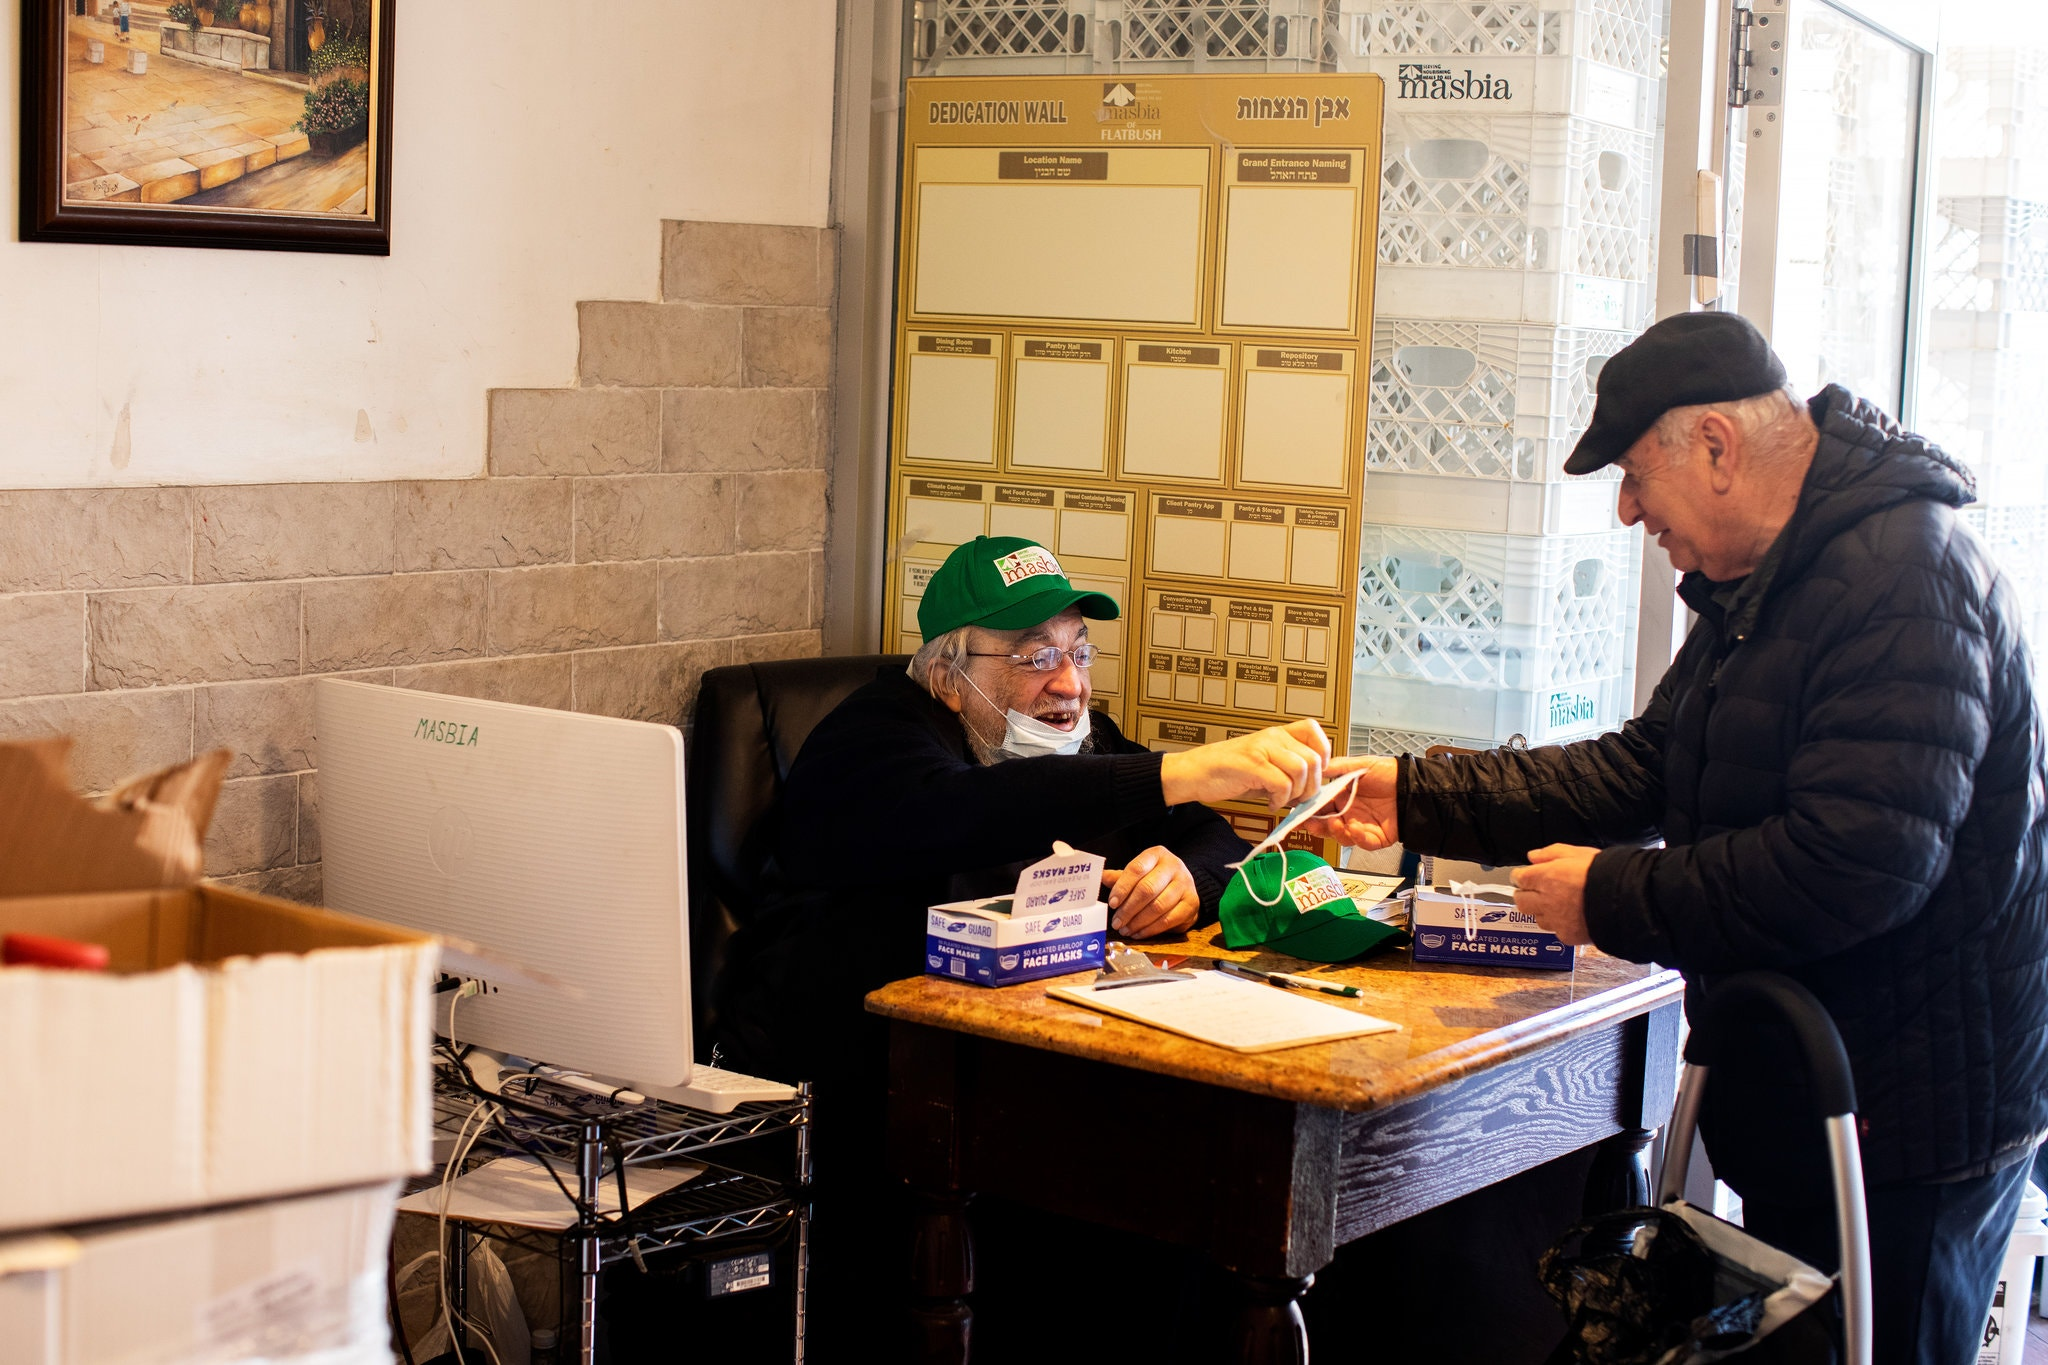 A Masbia volunteer handing a client a mask and checking him in.